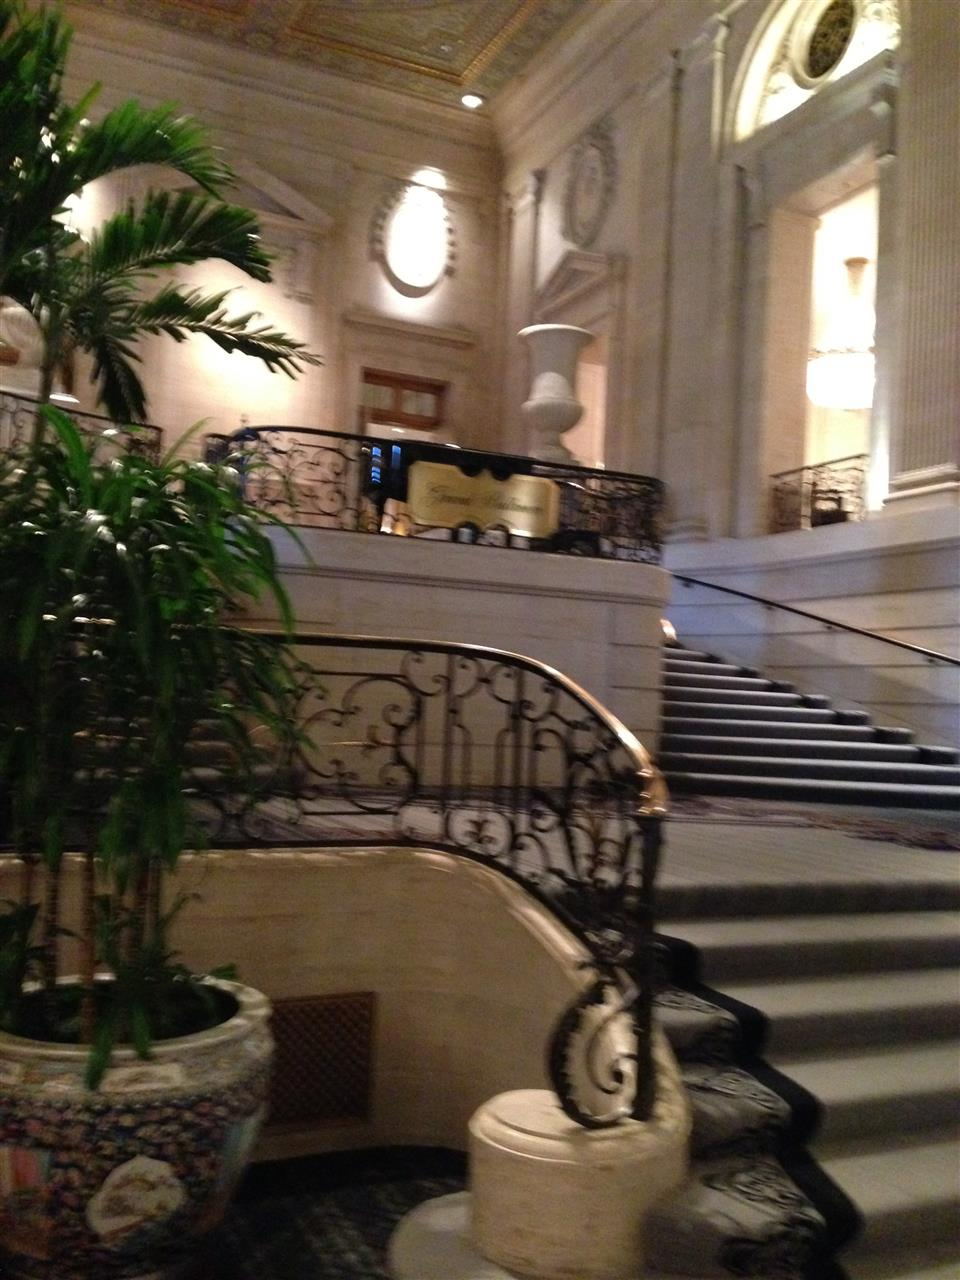 Staircase in the lobby of the Hilton Hotel, Chicago, Ill